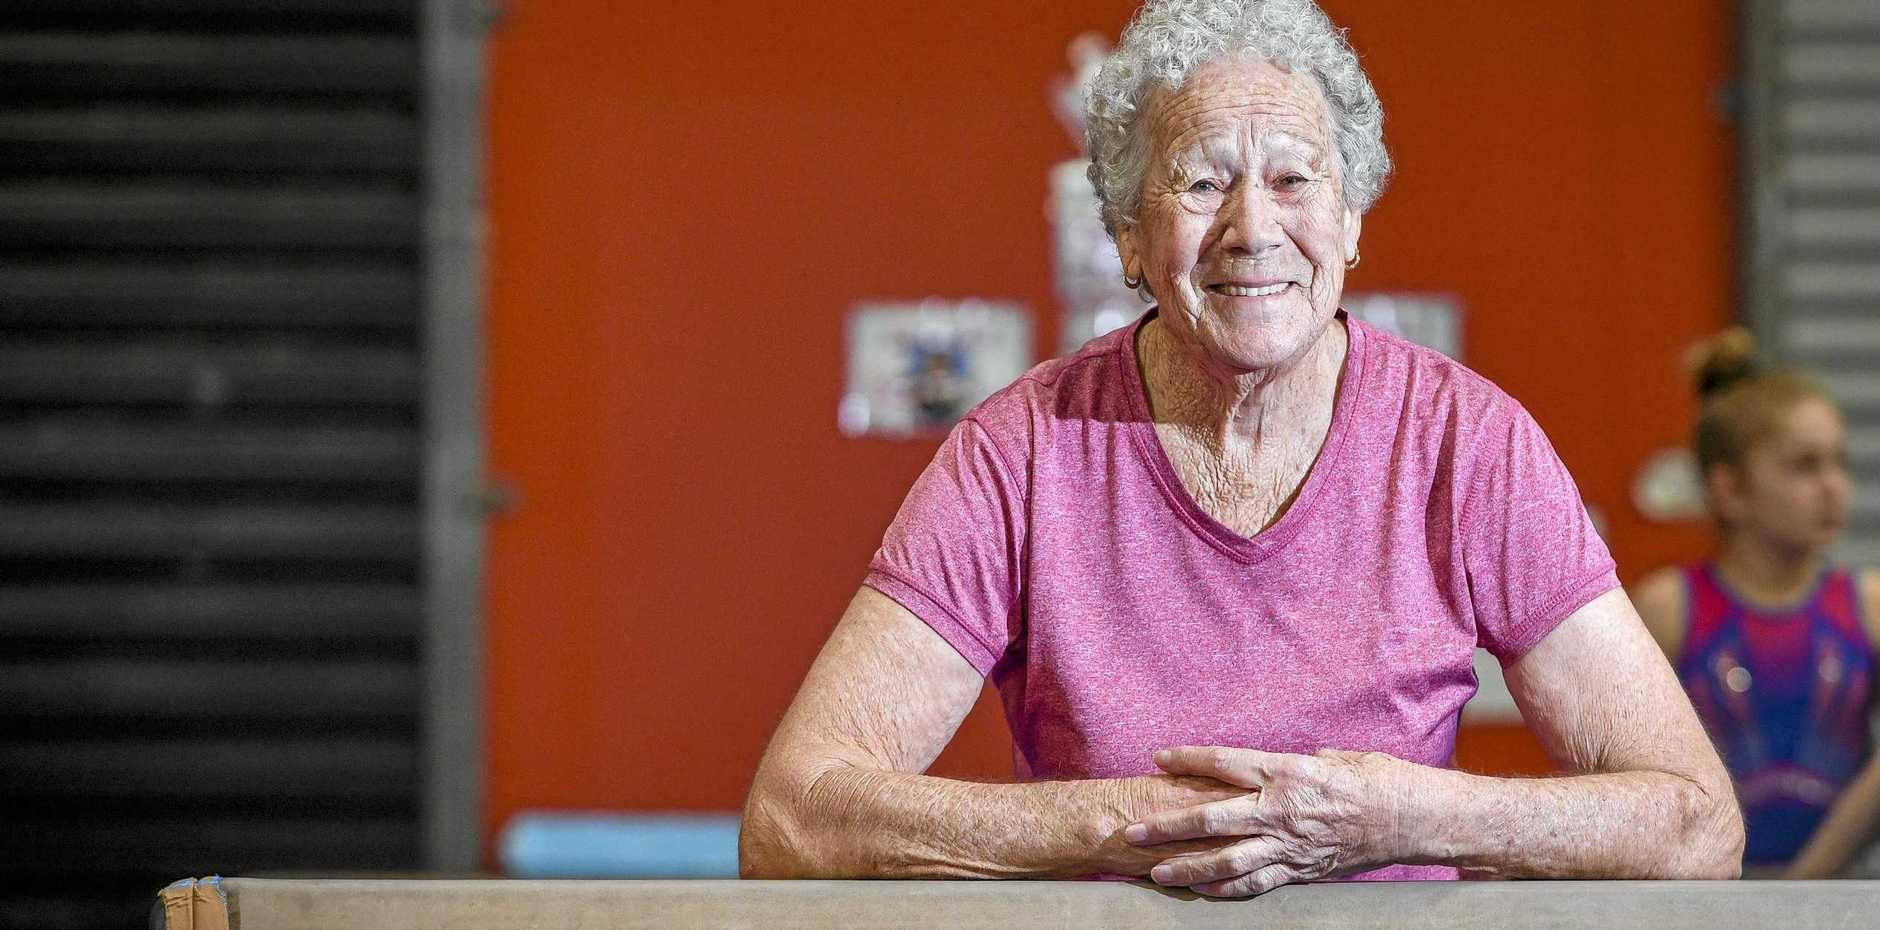 GOING STRONG: Telina resident Margaret Wilson, 82, will compete in this weekend's Gymnastics Queensland Masters event held at Gladstone.